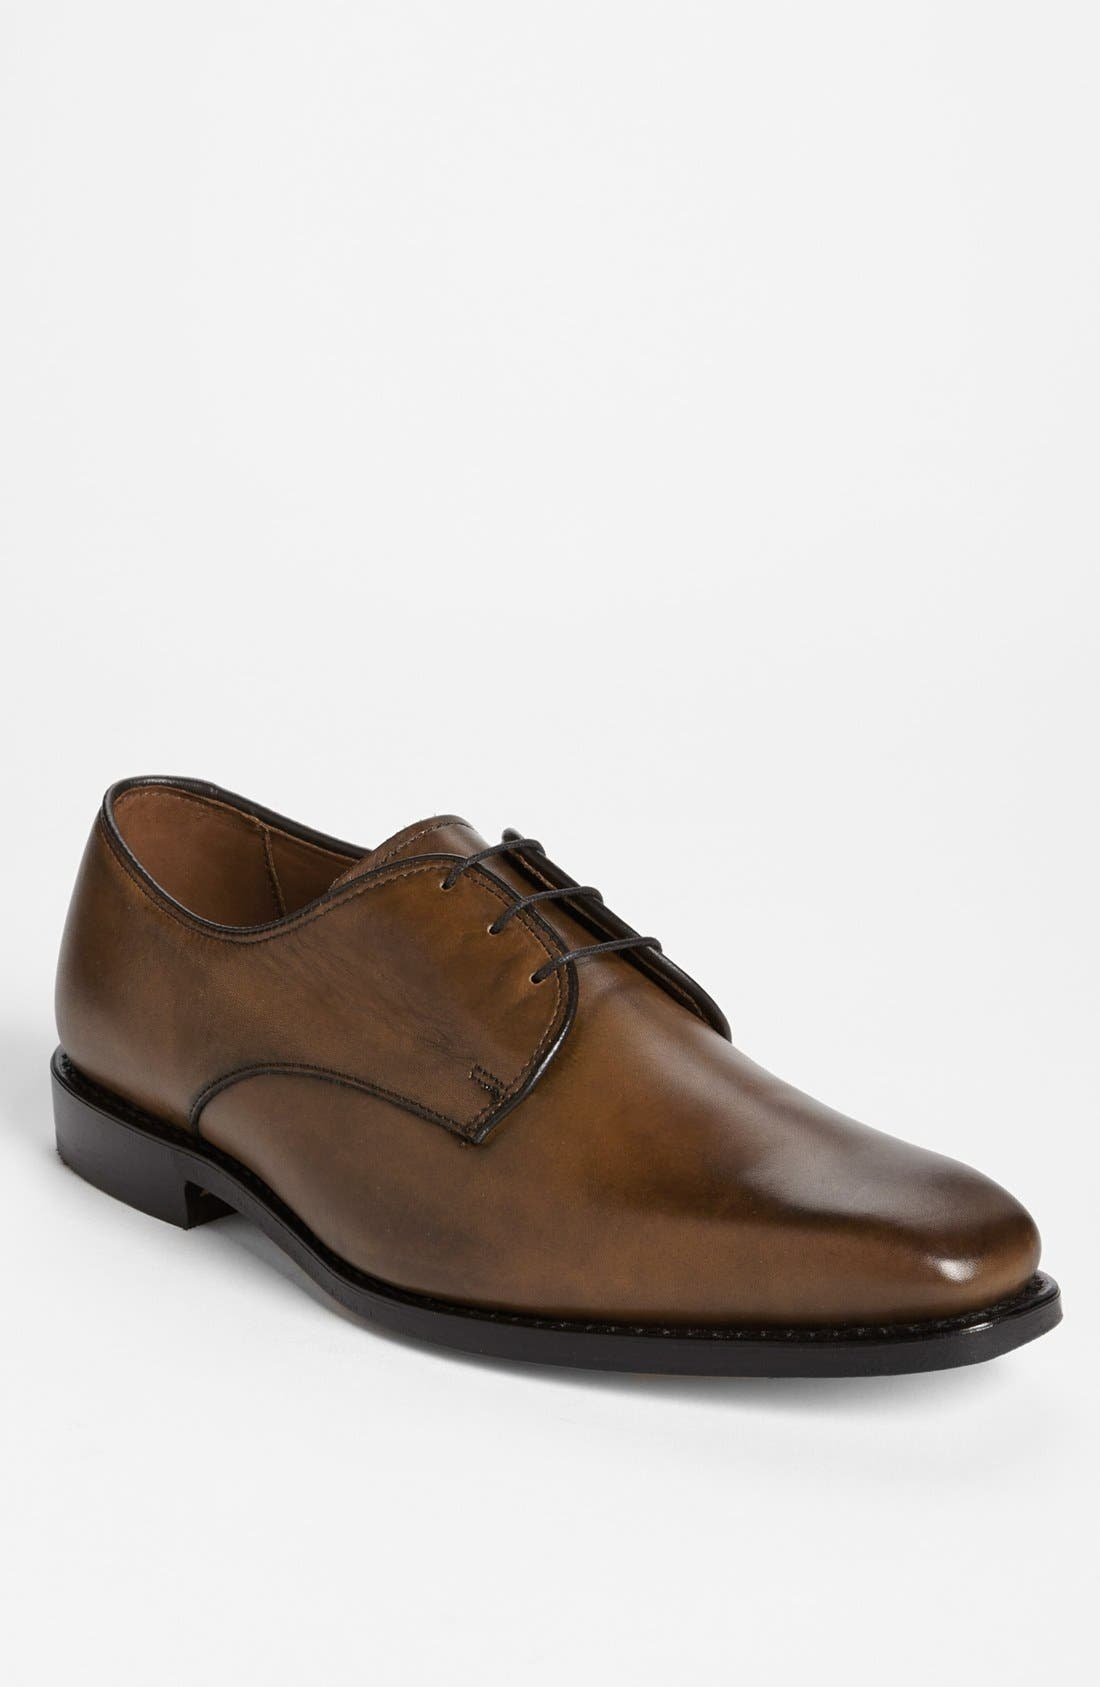 Alternate Image 1 Selected - Allen Edmonds 'Fort Collins' Plain Toe Derby (Men)